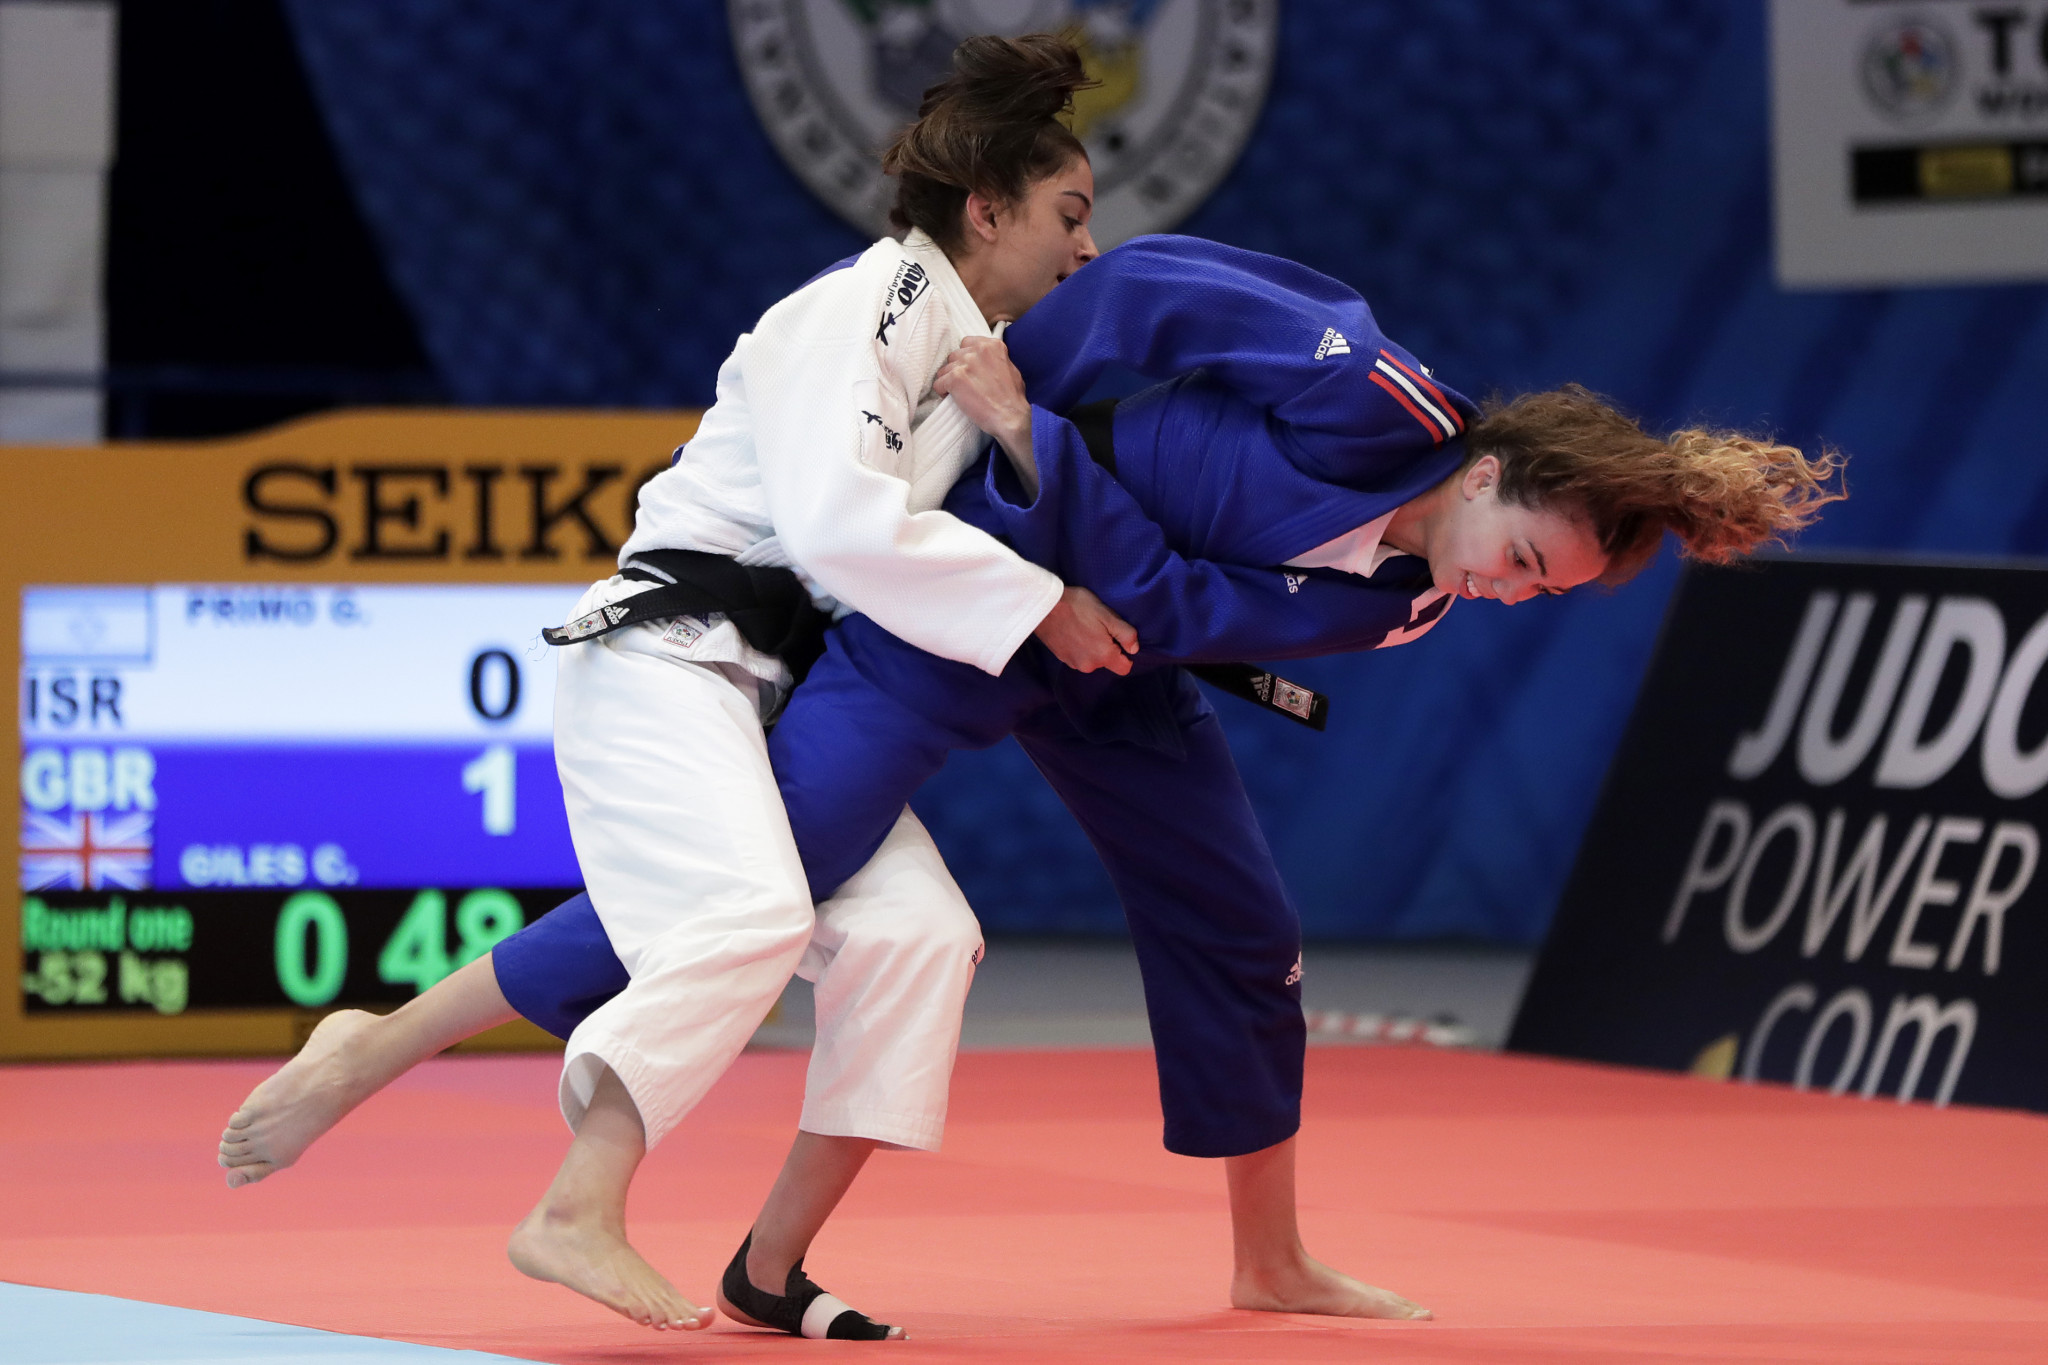 IJF World Championships: Day two of competition